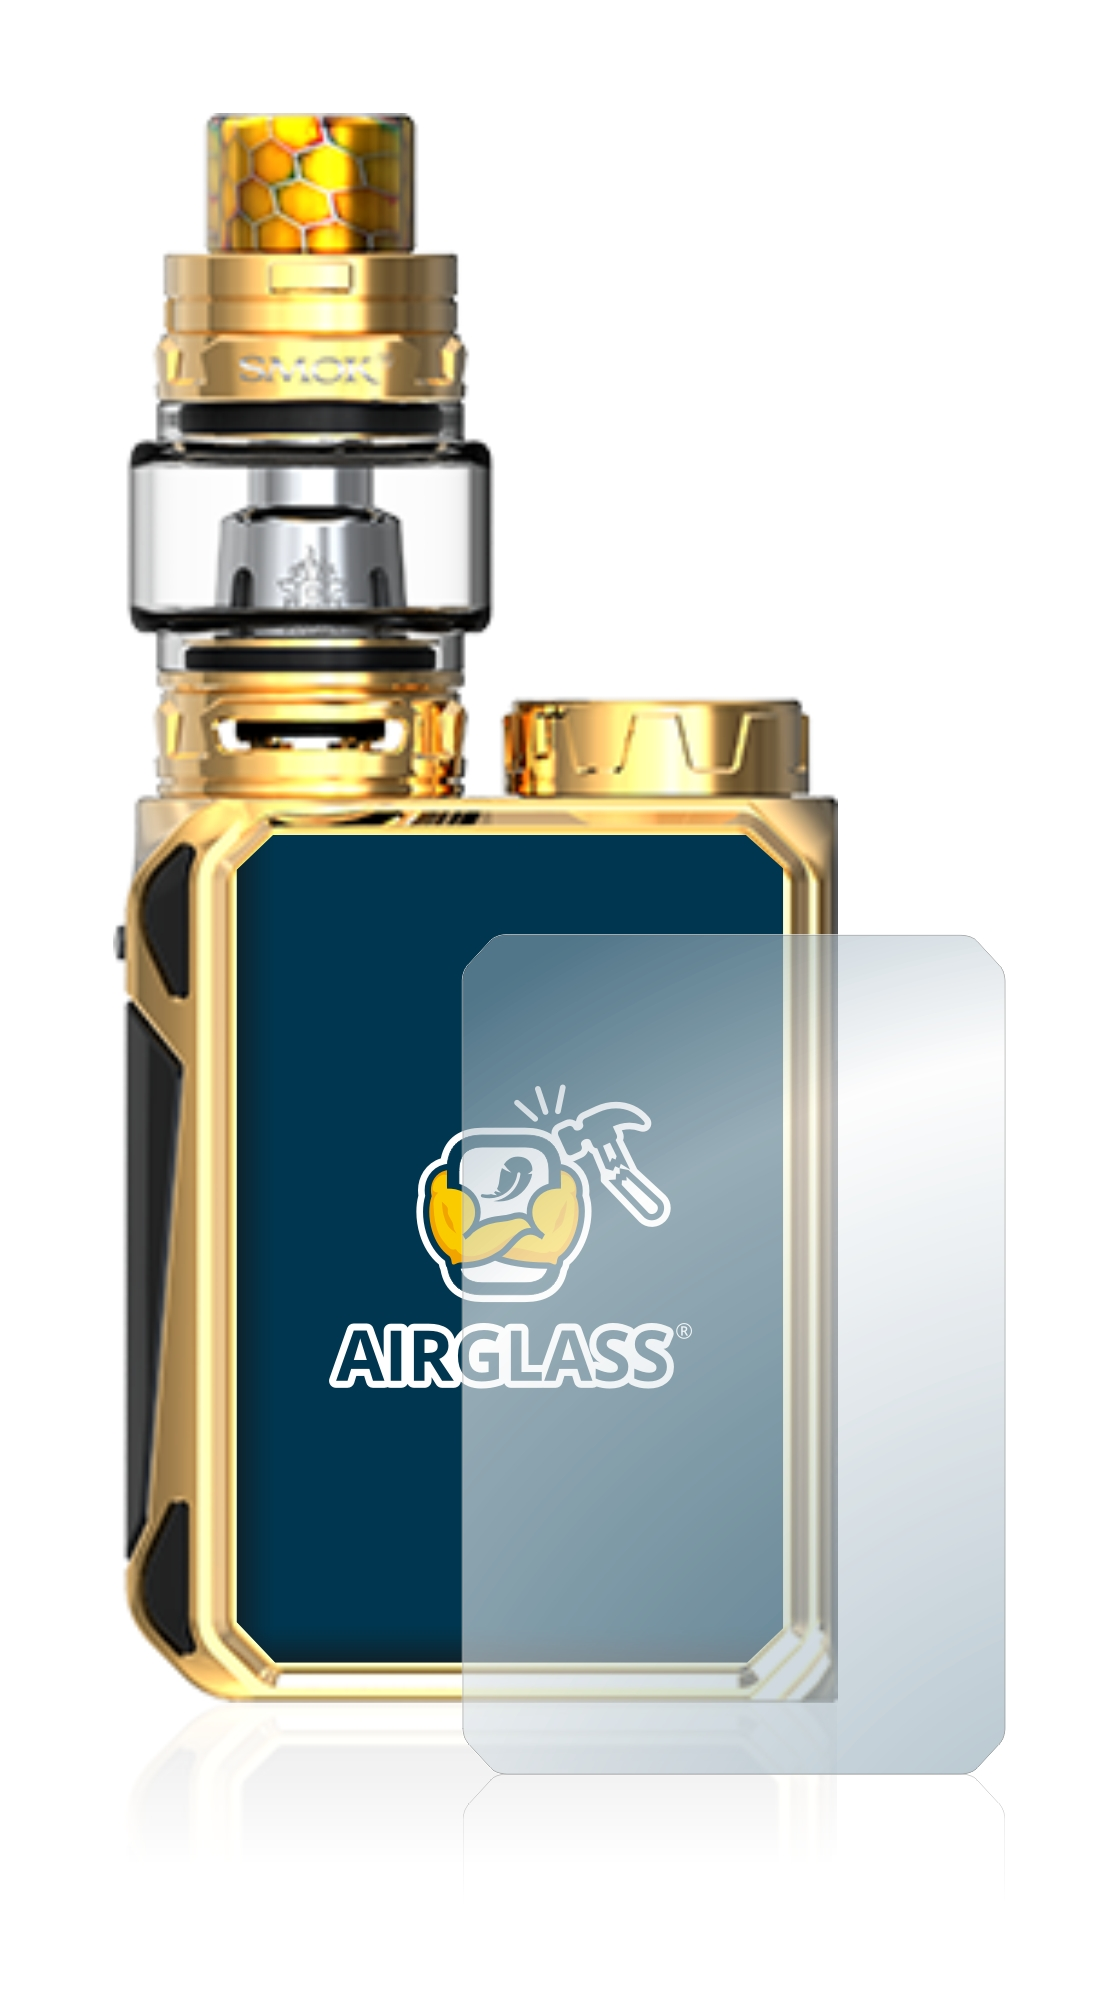 Extra-Hard Screen Guard Ultra-Light Bedifol BROTECT AirGlass Glass Screen Protector for Smok G-Priv Baby